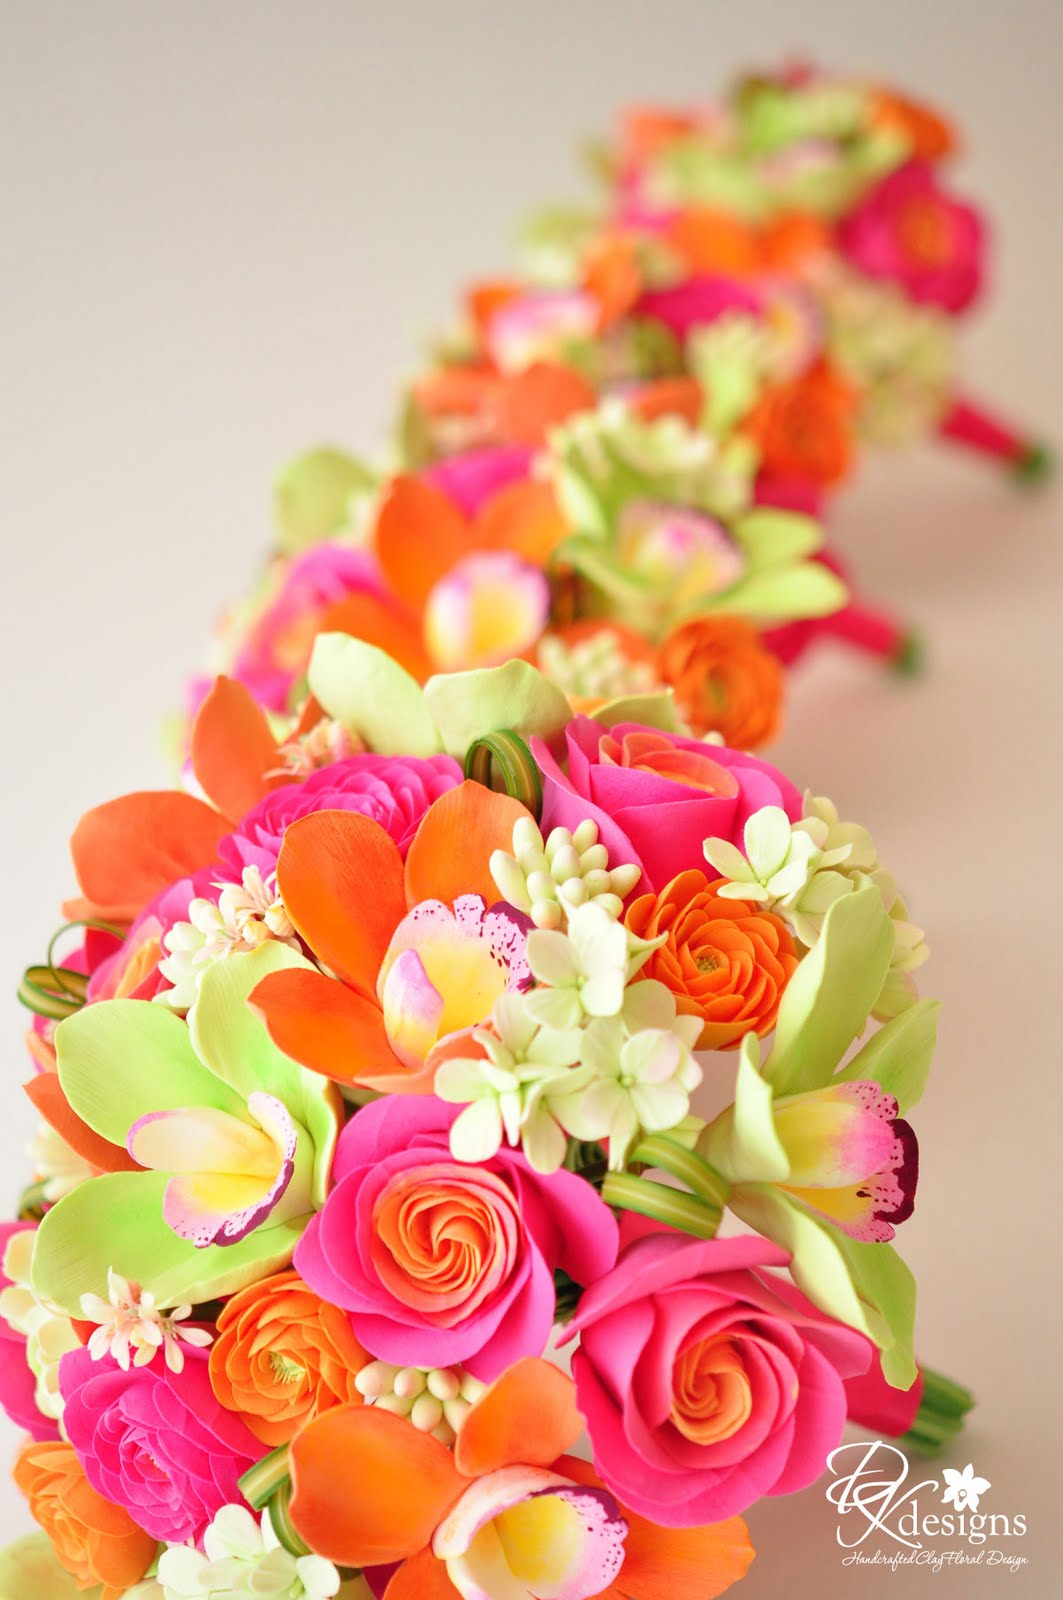 Pink Orange And Green Flowers For A Destination Wedding In Jamaica